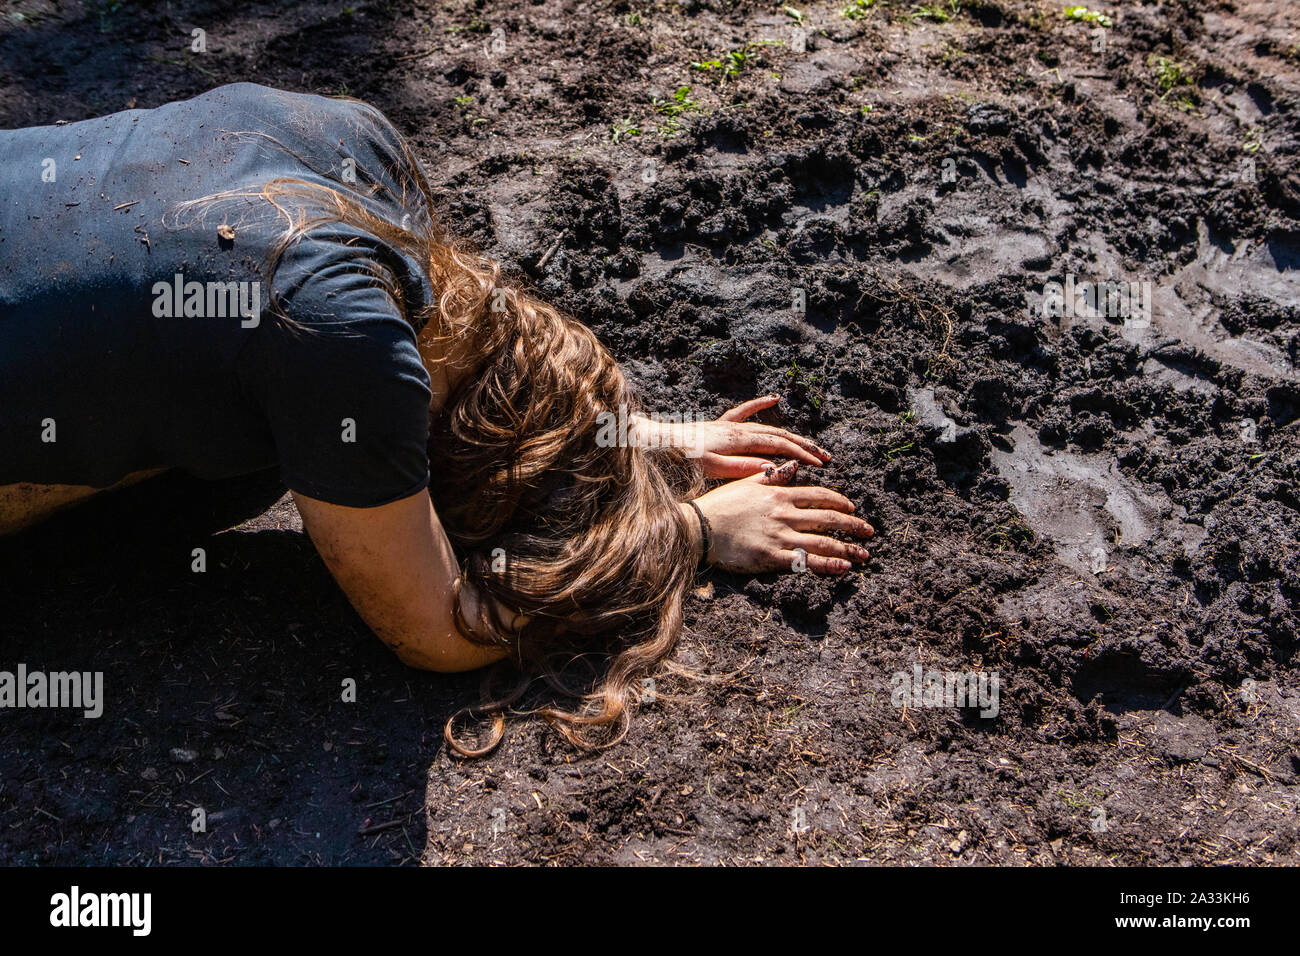 A closeup view of a young brunette woman, crouched over face down in a muddy puddle, seeking contemplation and enlightenment in nature during shamanic retreat. Stock Photo